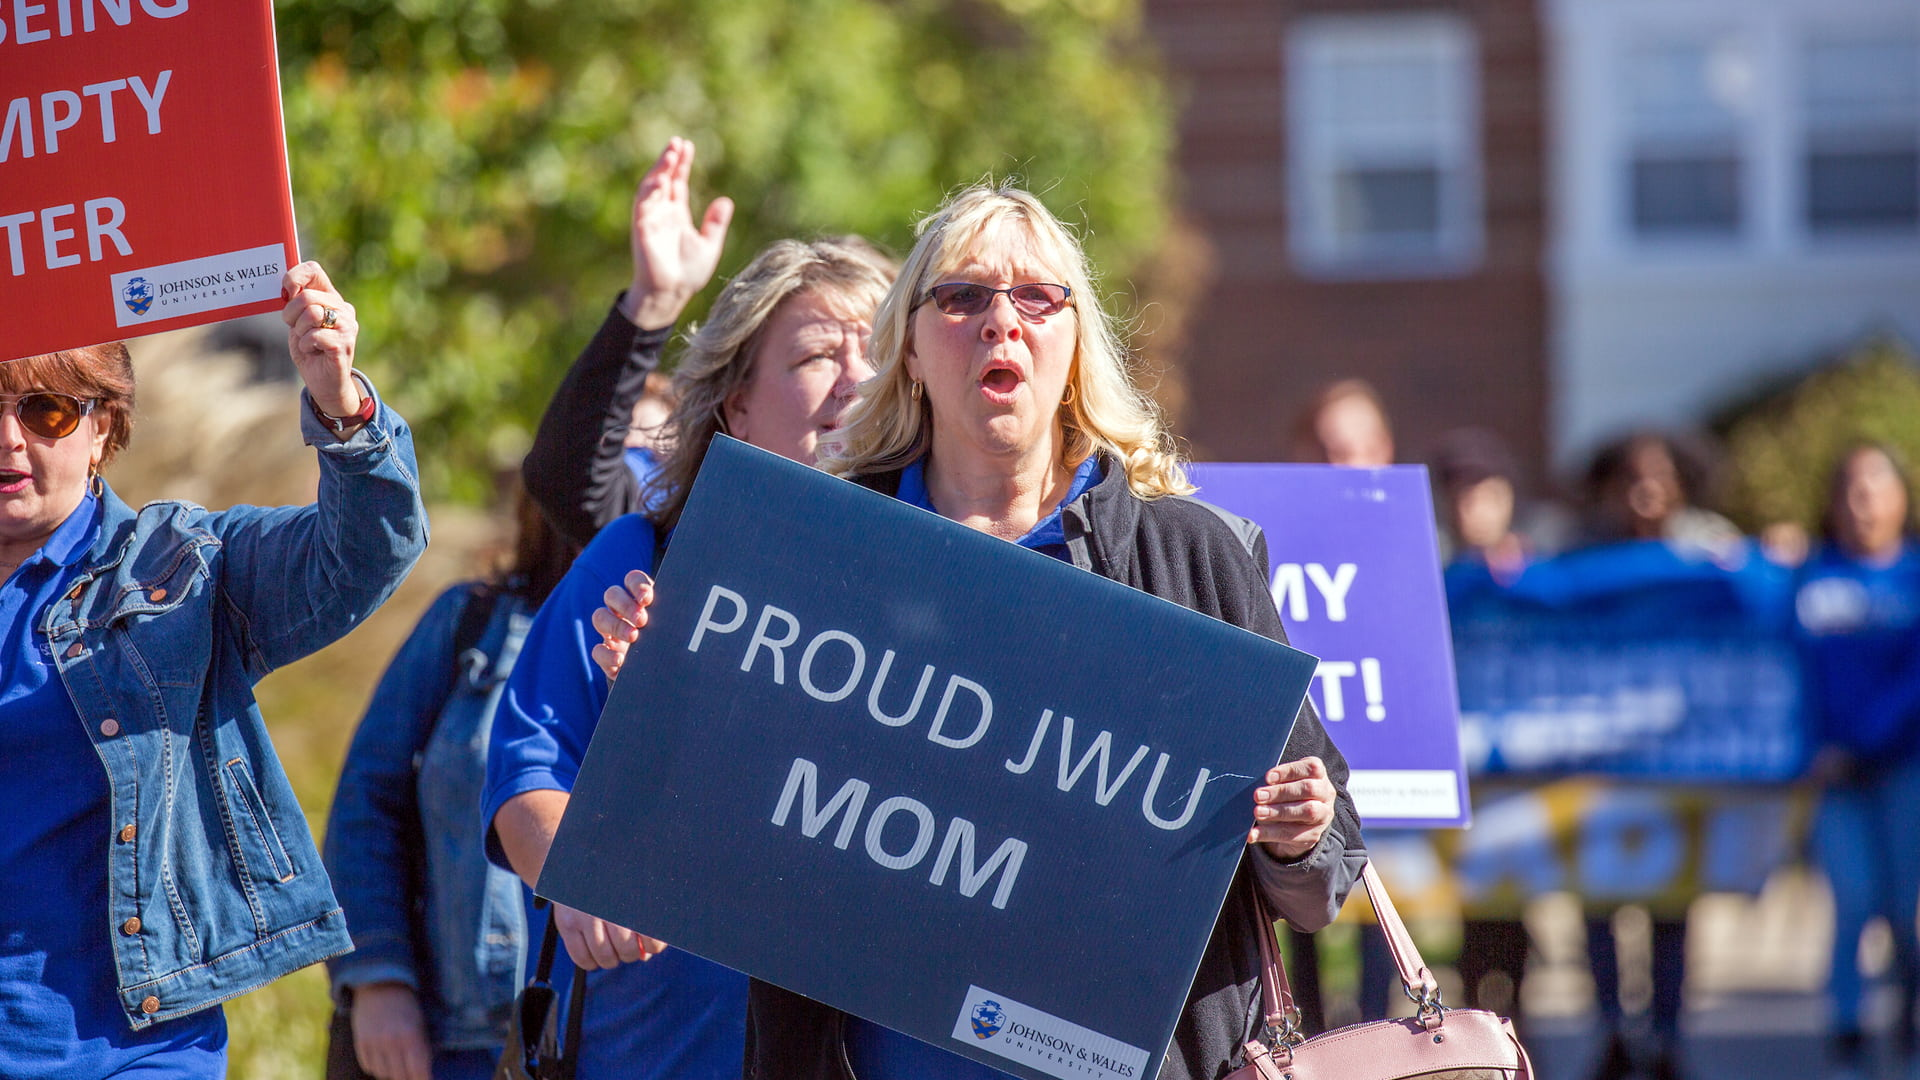 Proud JWU Mom walking in the annual Homecoming and Family Weekend parade.